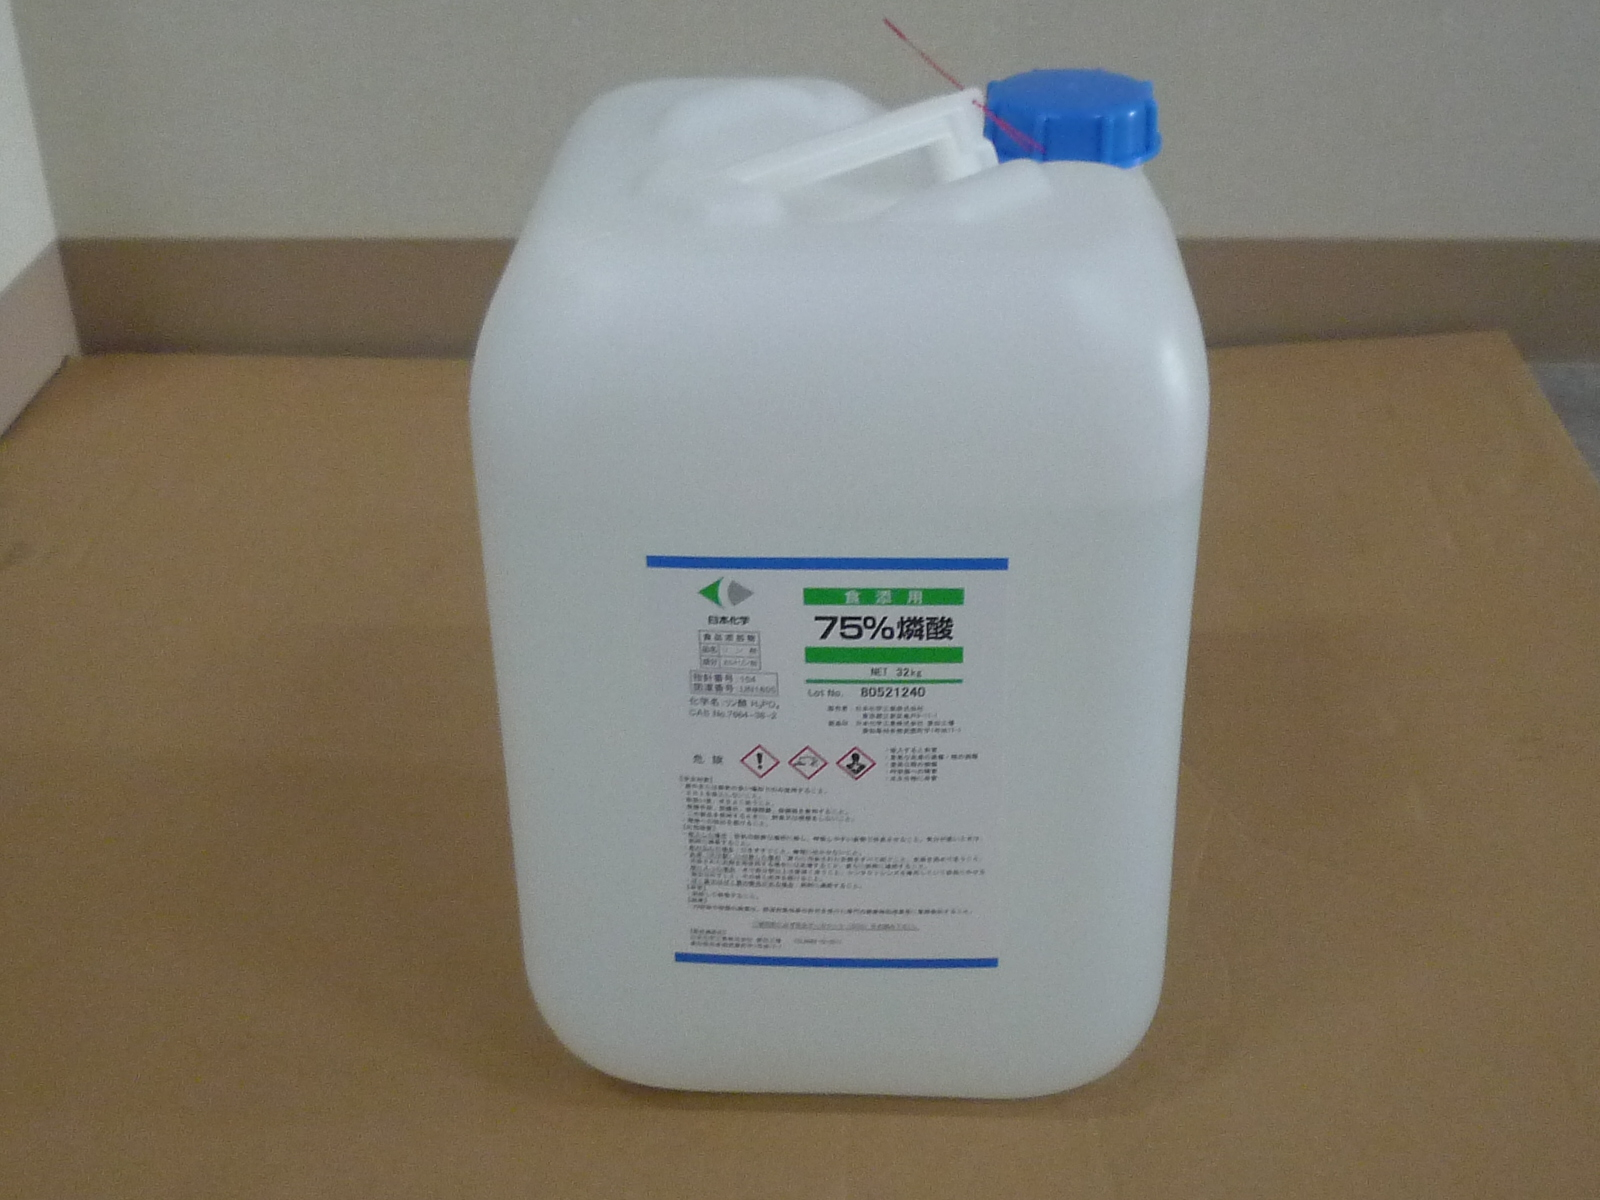 Phoshoric Acid (75wt.% aqueous solution)